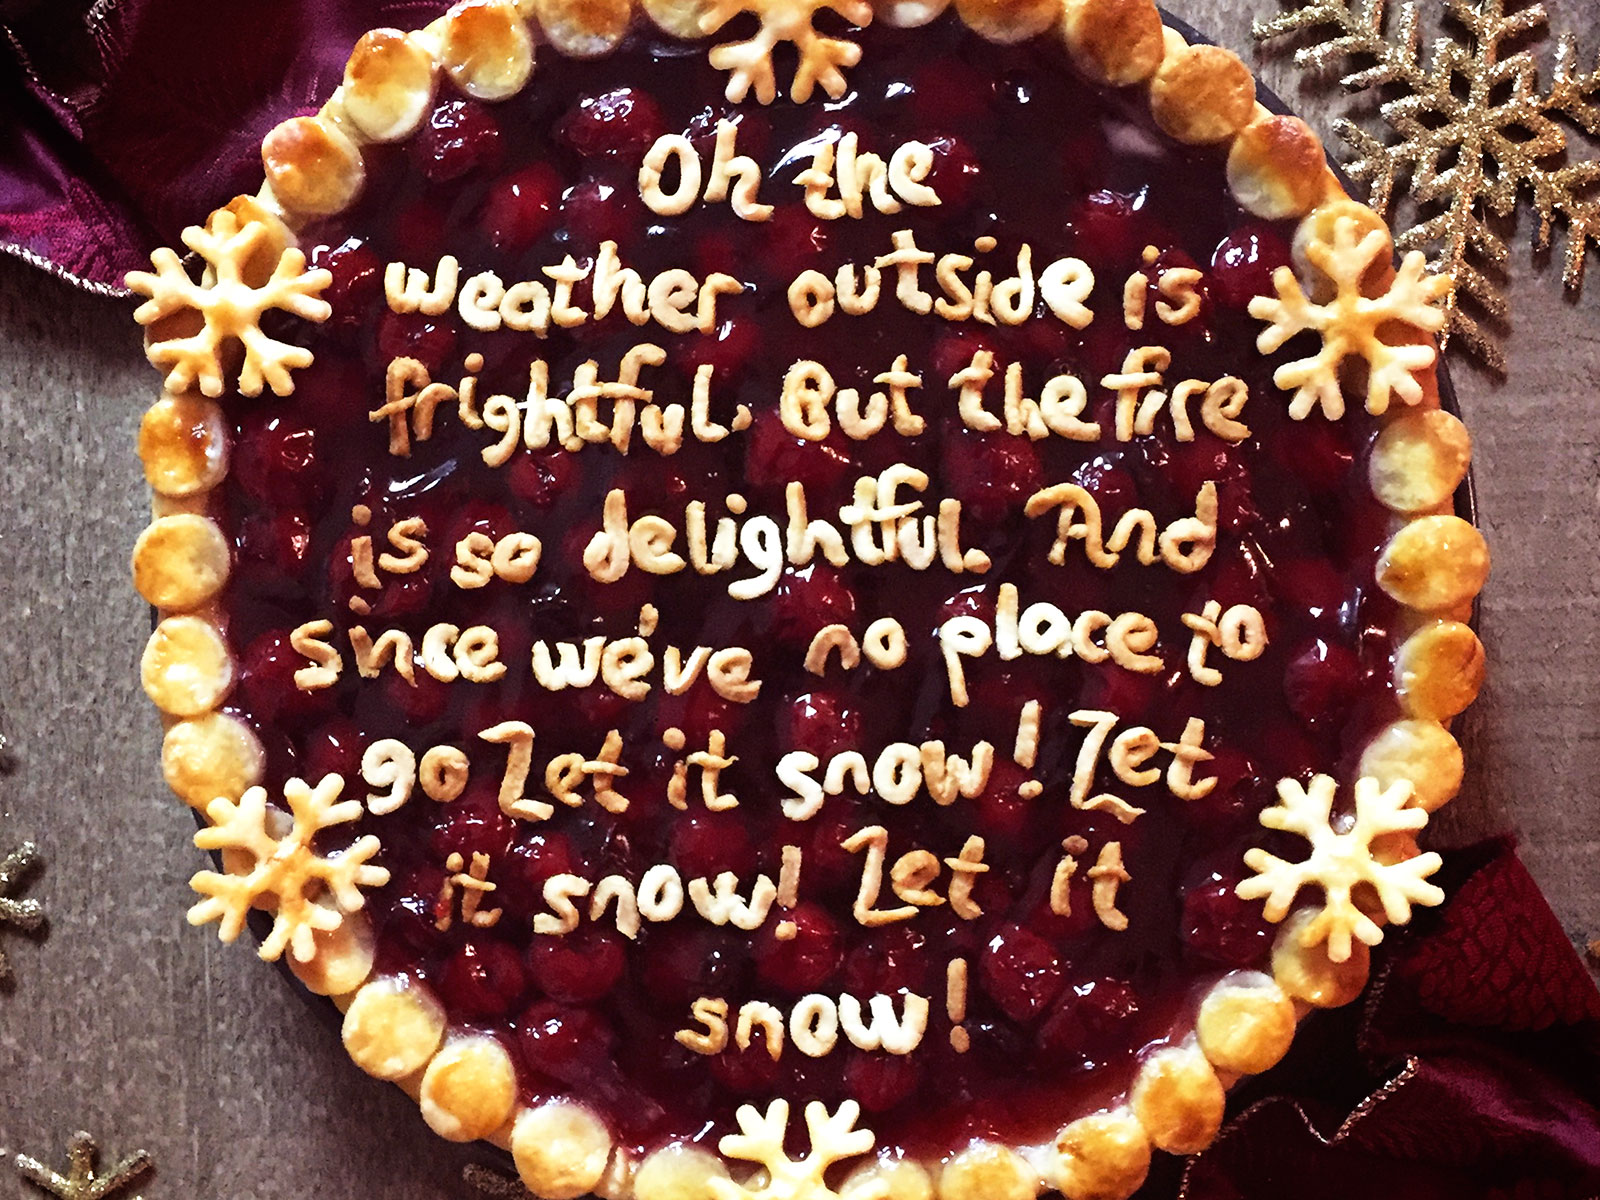 let it snow lyrics on pie